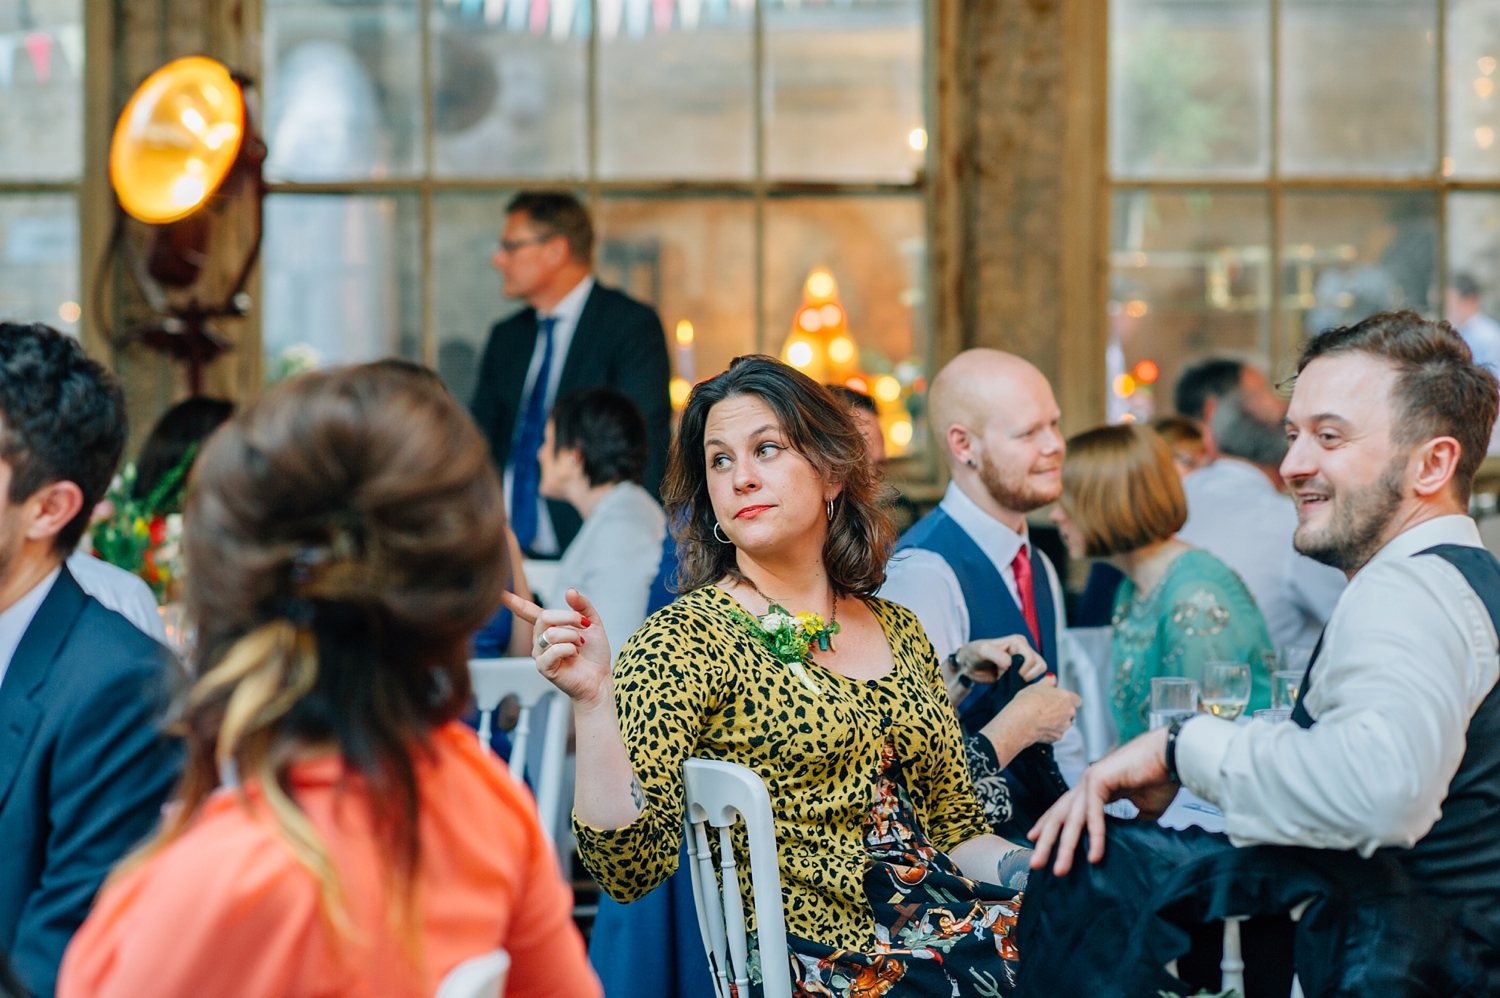 0150-lisa-devine-alternative-wedding-photography-london-hackney-dalston-london-photography-townhall-hotel.JPG